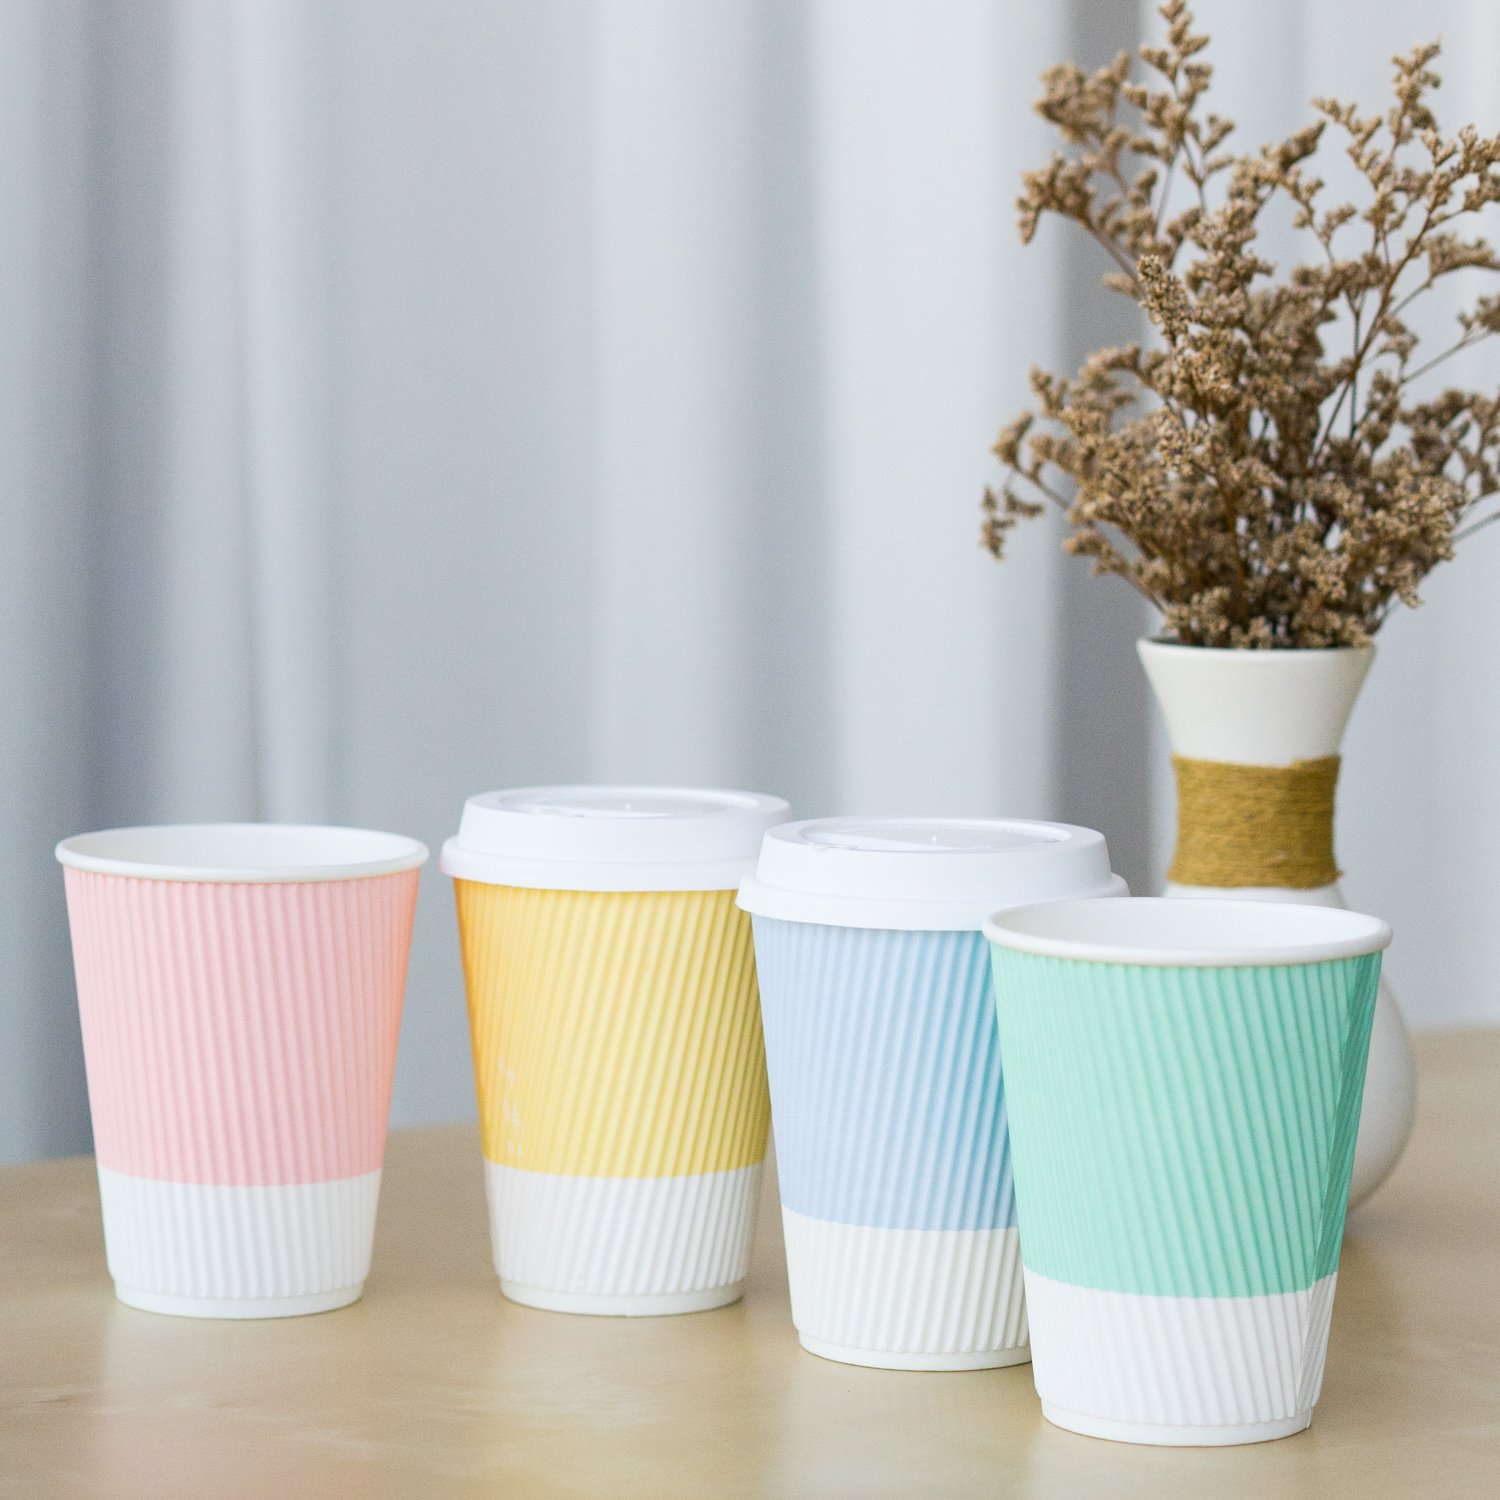 Disposable Coffee Cups With Lids - 12 oz To Go Coffee Cup ...